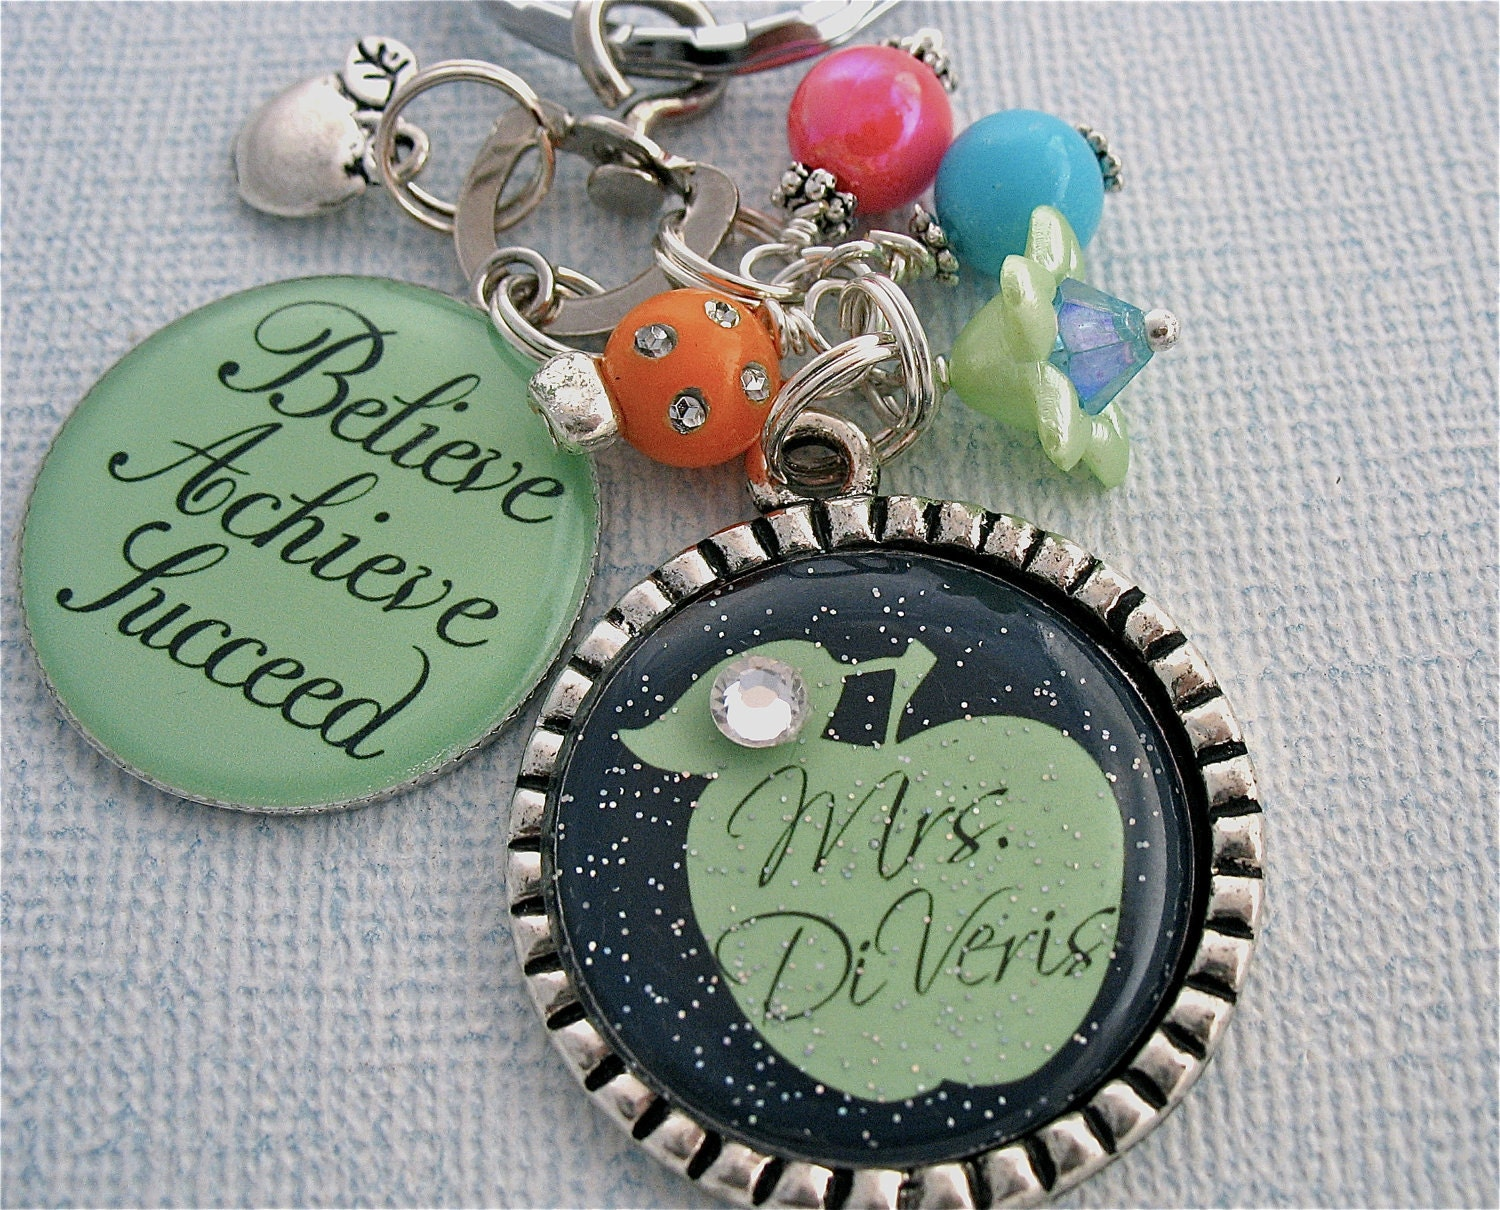 TEACHER GIFT Personalized Bottle cap Pendant  Keychain Necklace, Back to School TEACH love inspire, Learning, Teachers Gift Present